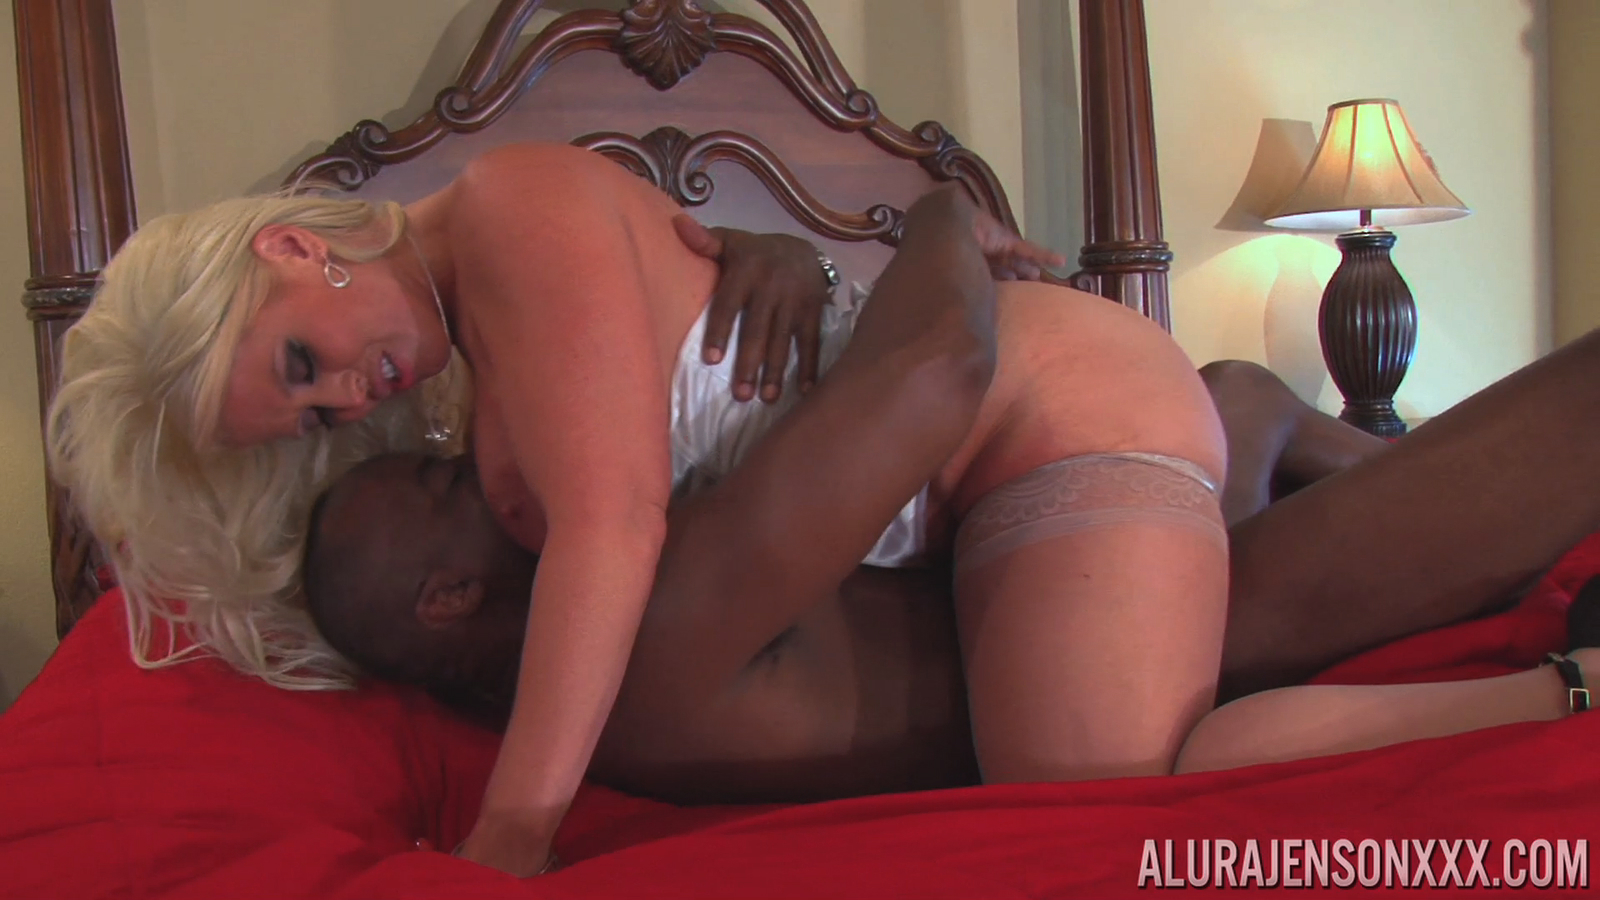 Alura jenson fucks me but my dick looks small need to reshoot this thing 10